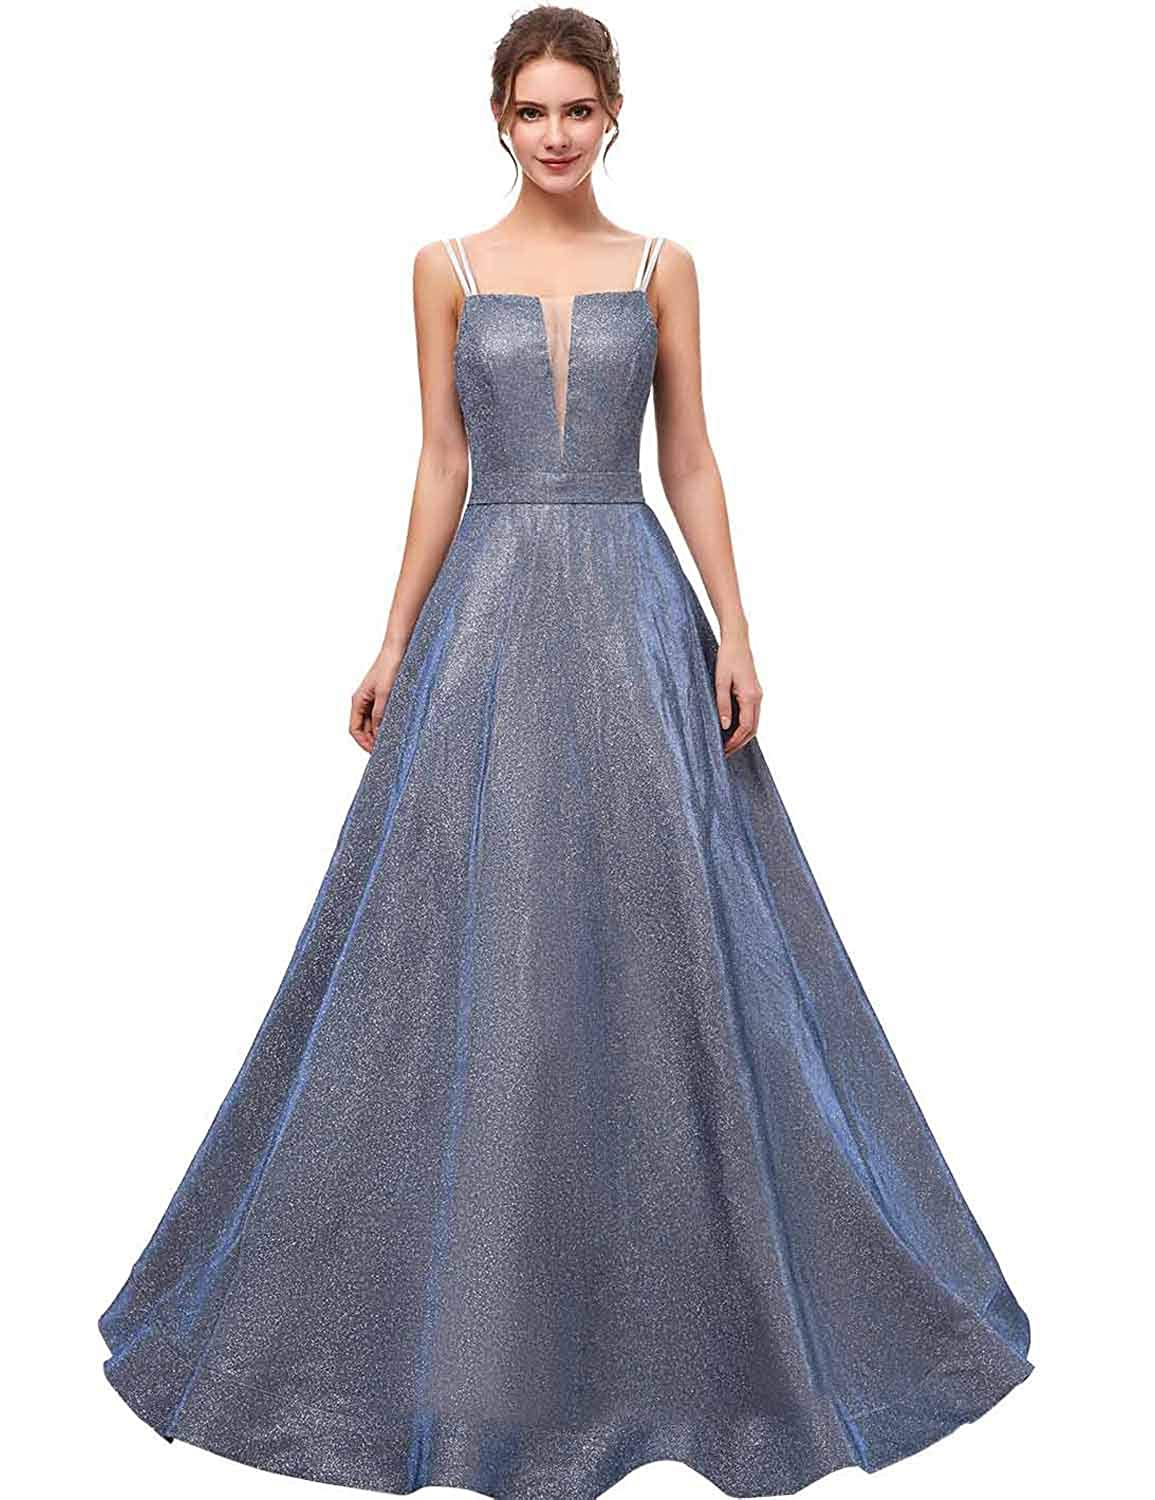 634b6afff Amazon.com: Sarahbridal Women's Crystal Beaded Prom Dresses Long Formal  Evening Gowns LX116: Clothing